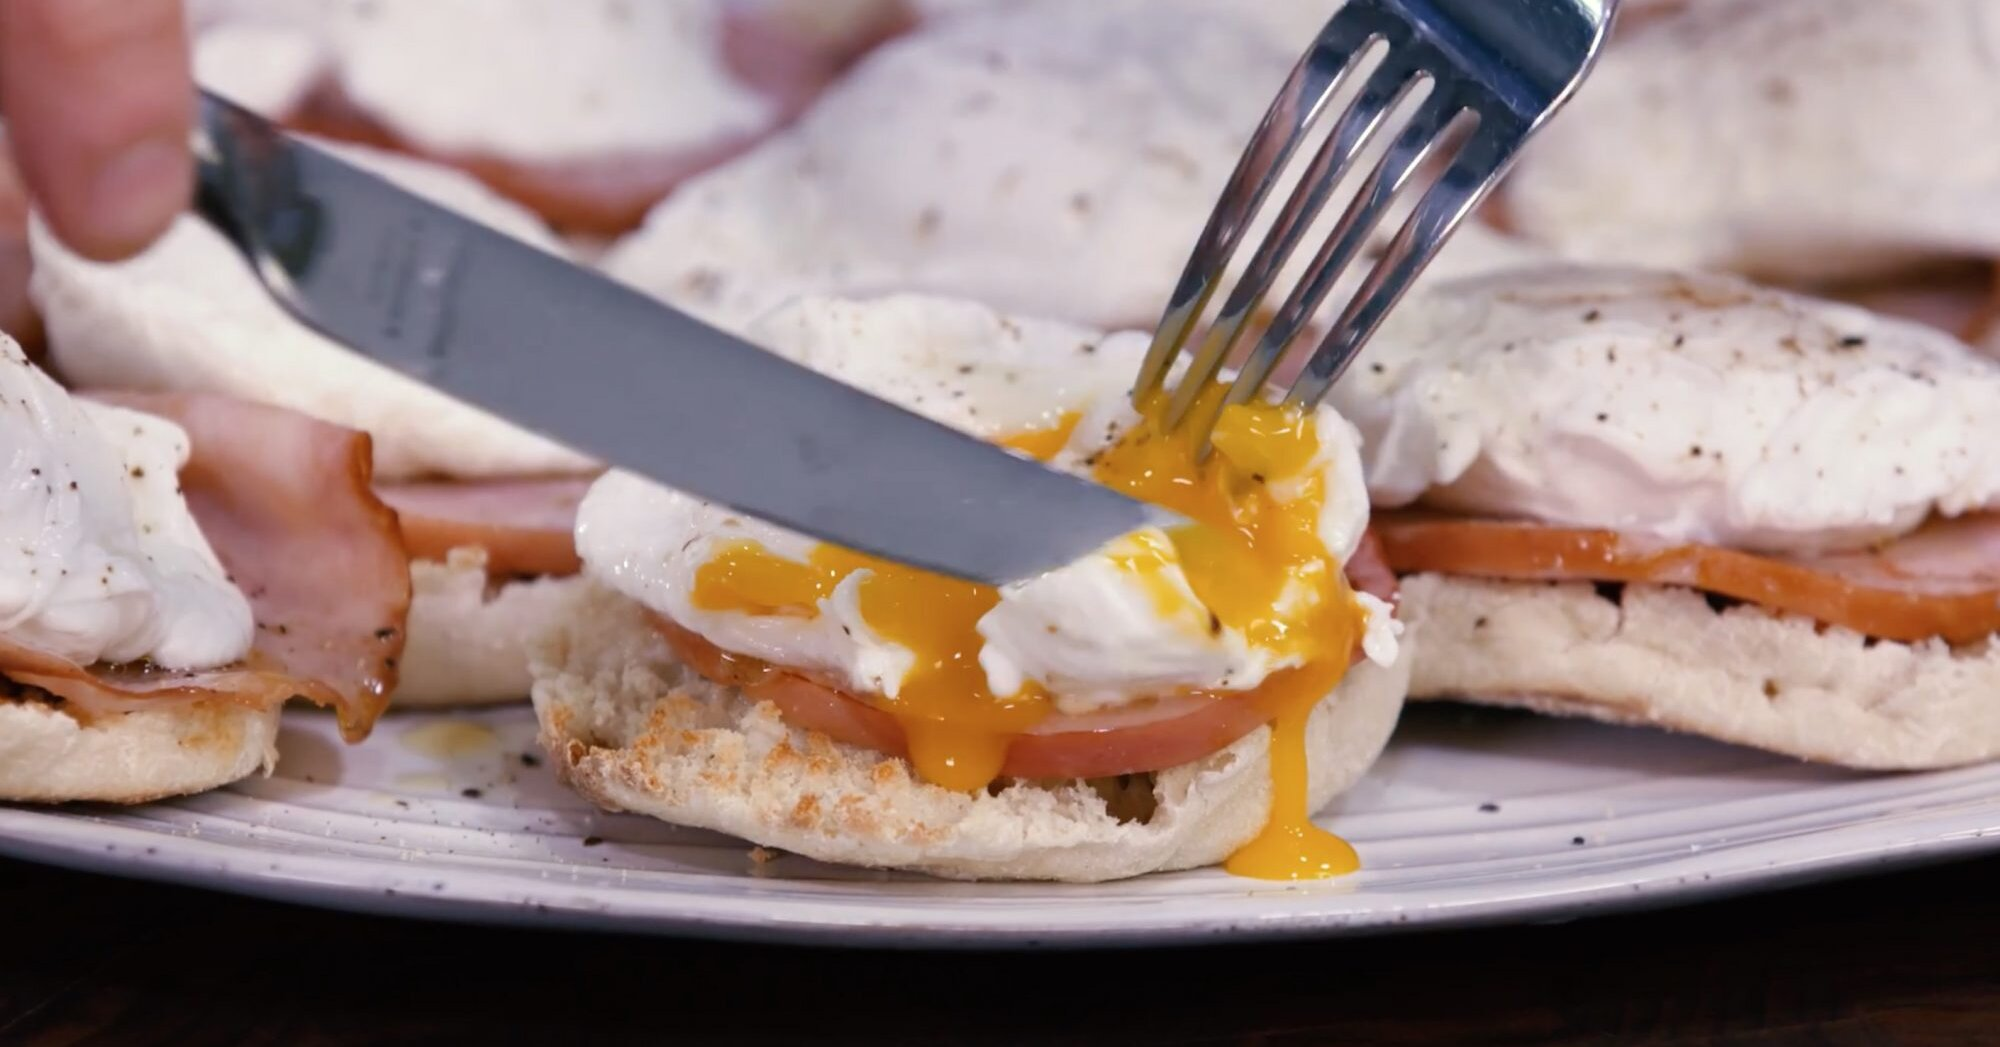 How to Make Poached Eggs in Advance